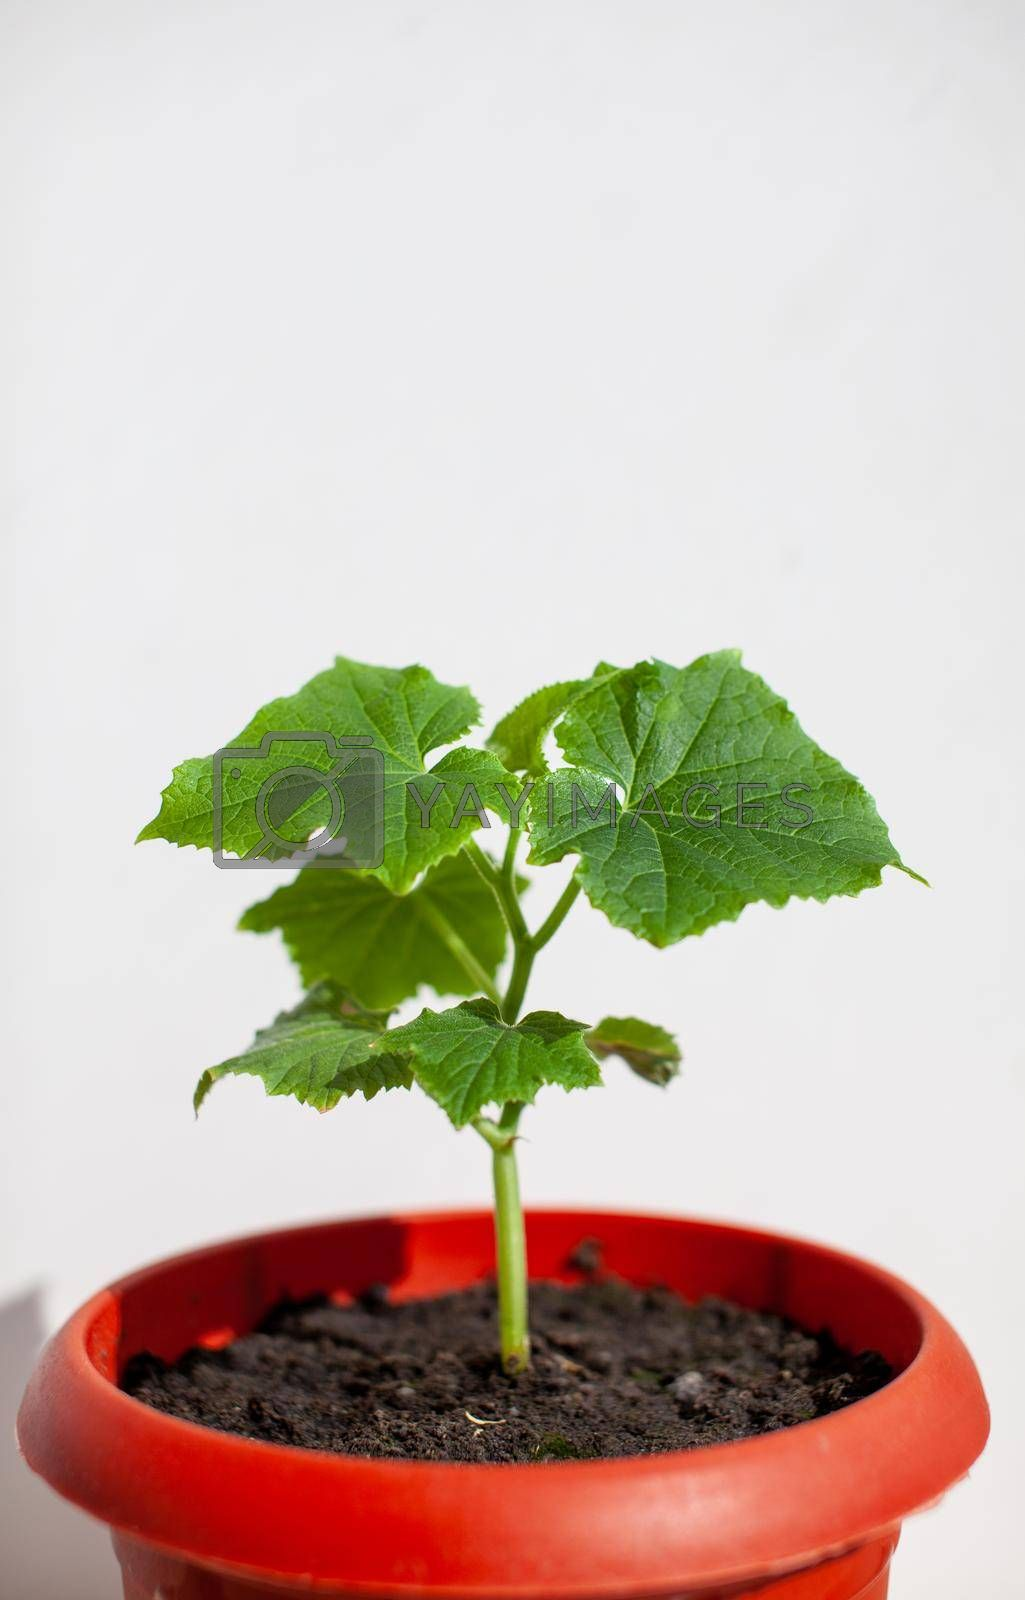 One young cucumber seedling in a pot on a white background. Seedlings grown on the window. The concept of organic food. Vegetarian food.